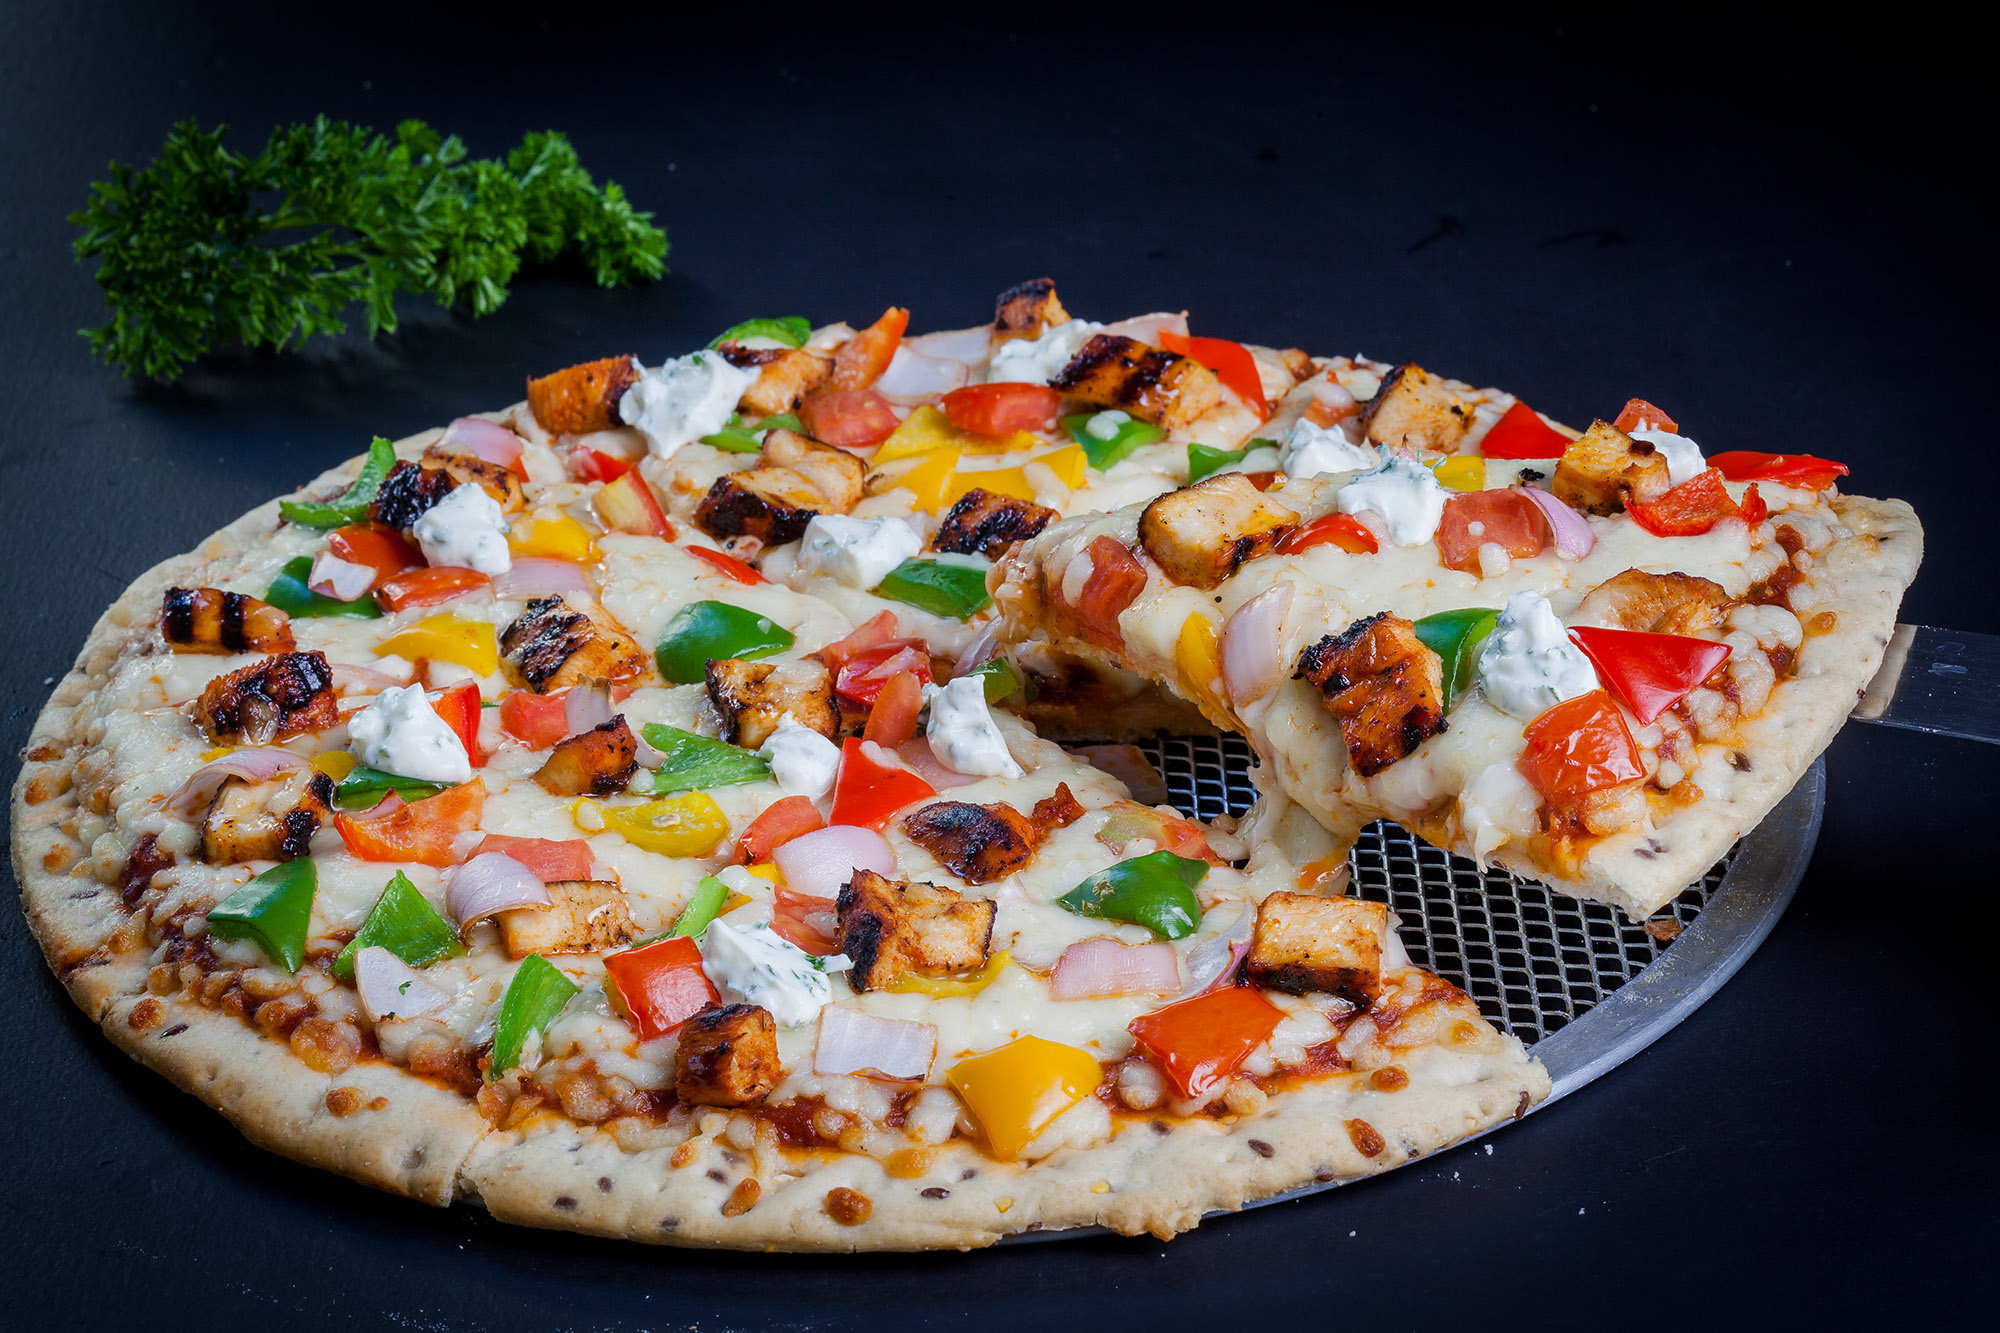 Fresh Toppings - We take pride in our fresh, herbaceous, juicy and generous toppings. FreshMenu pizzas come loaded with toppings. The quality of toppings make a whole lot of difference, we understand.